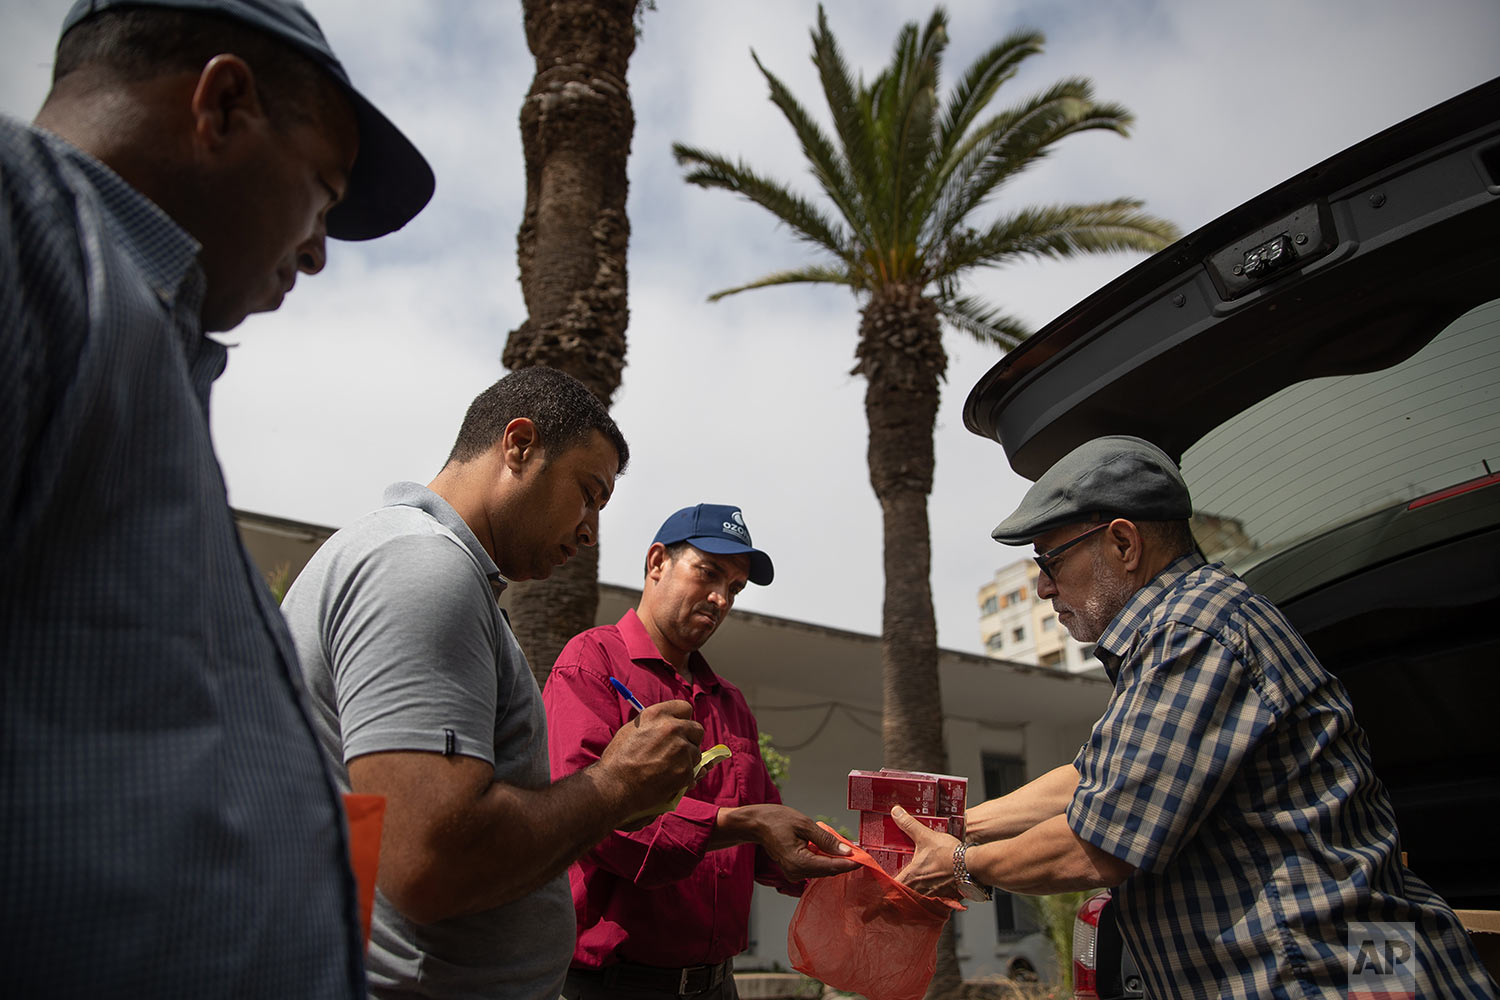 Habib El Ghazaoui, right, a father who runs the Association for Solidarity with Children of the Moon, distributes topical cream to parents of children affected by a rare disorder called xeroderma pigmentosum, or XP, inside a hospital in Casablanca, Morocco, July 24, 2019. (AP Photo/Mosa'ab Elshamy)